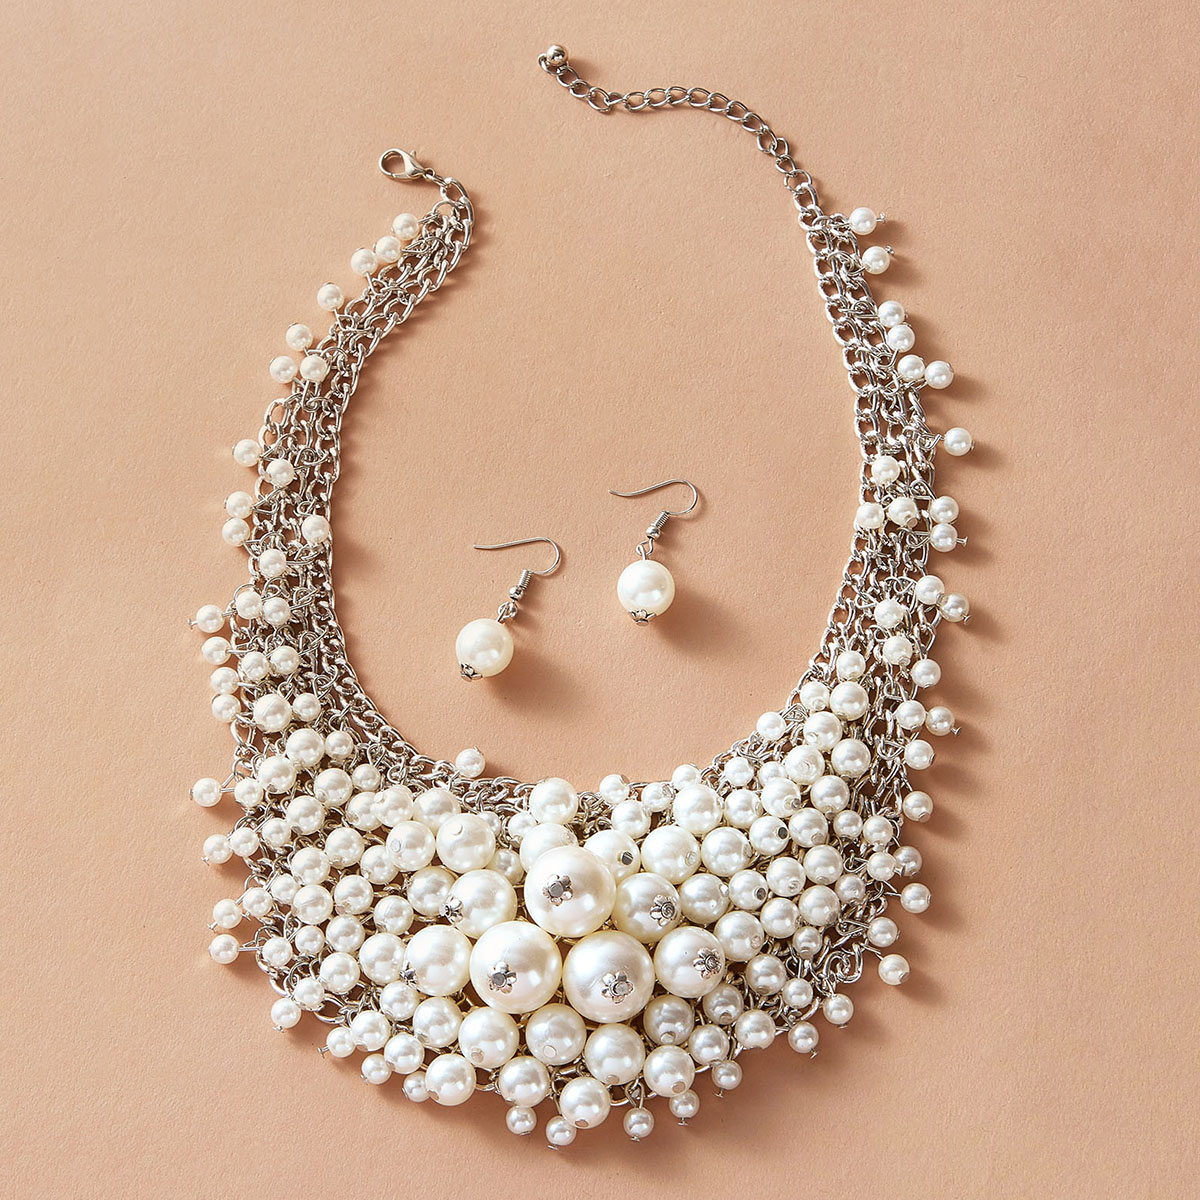 SHEIN / 1pc Pearl Decor Statement Necklace & 1pair Earrings